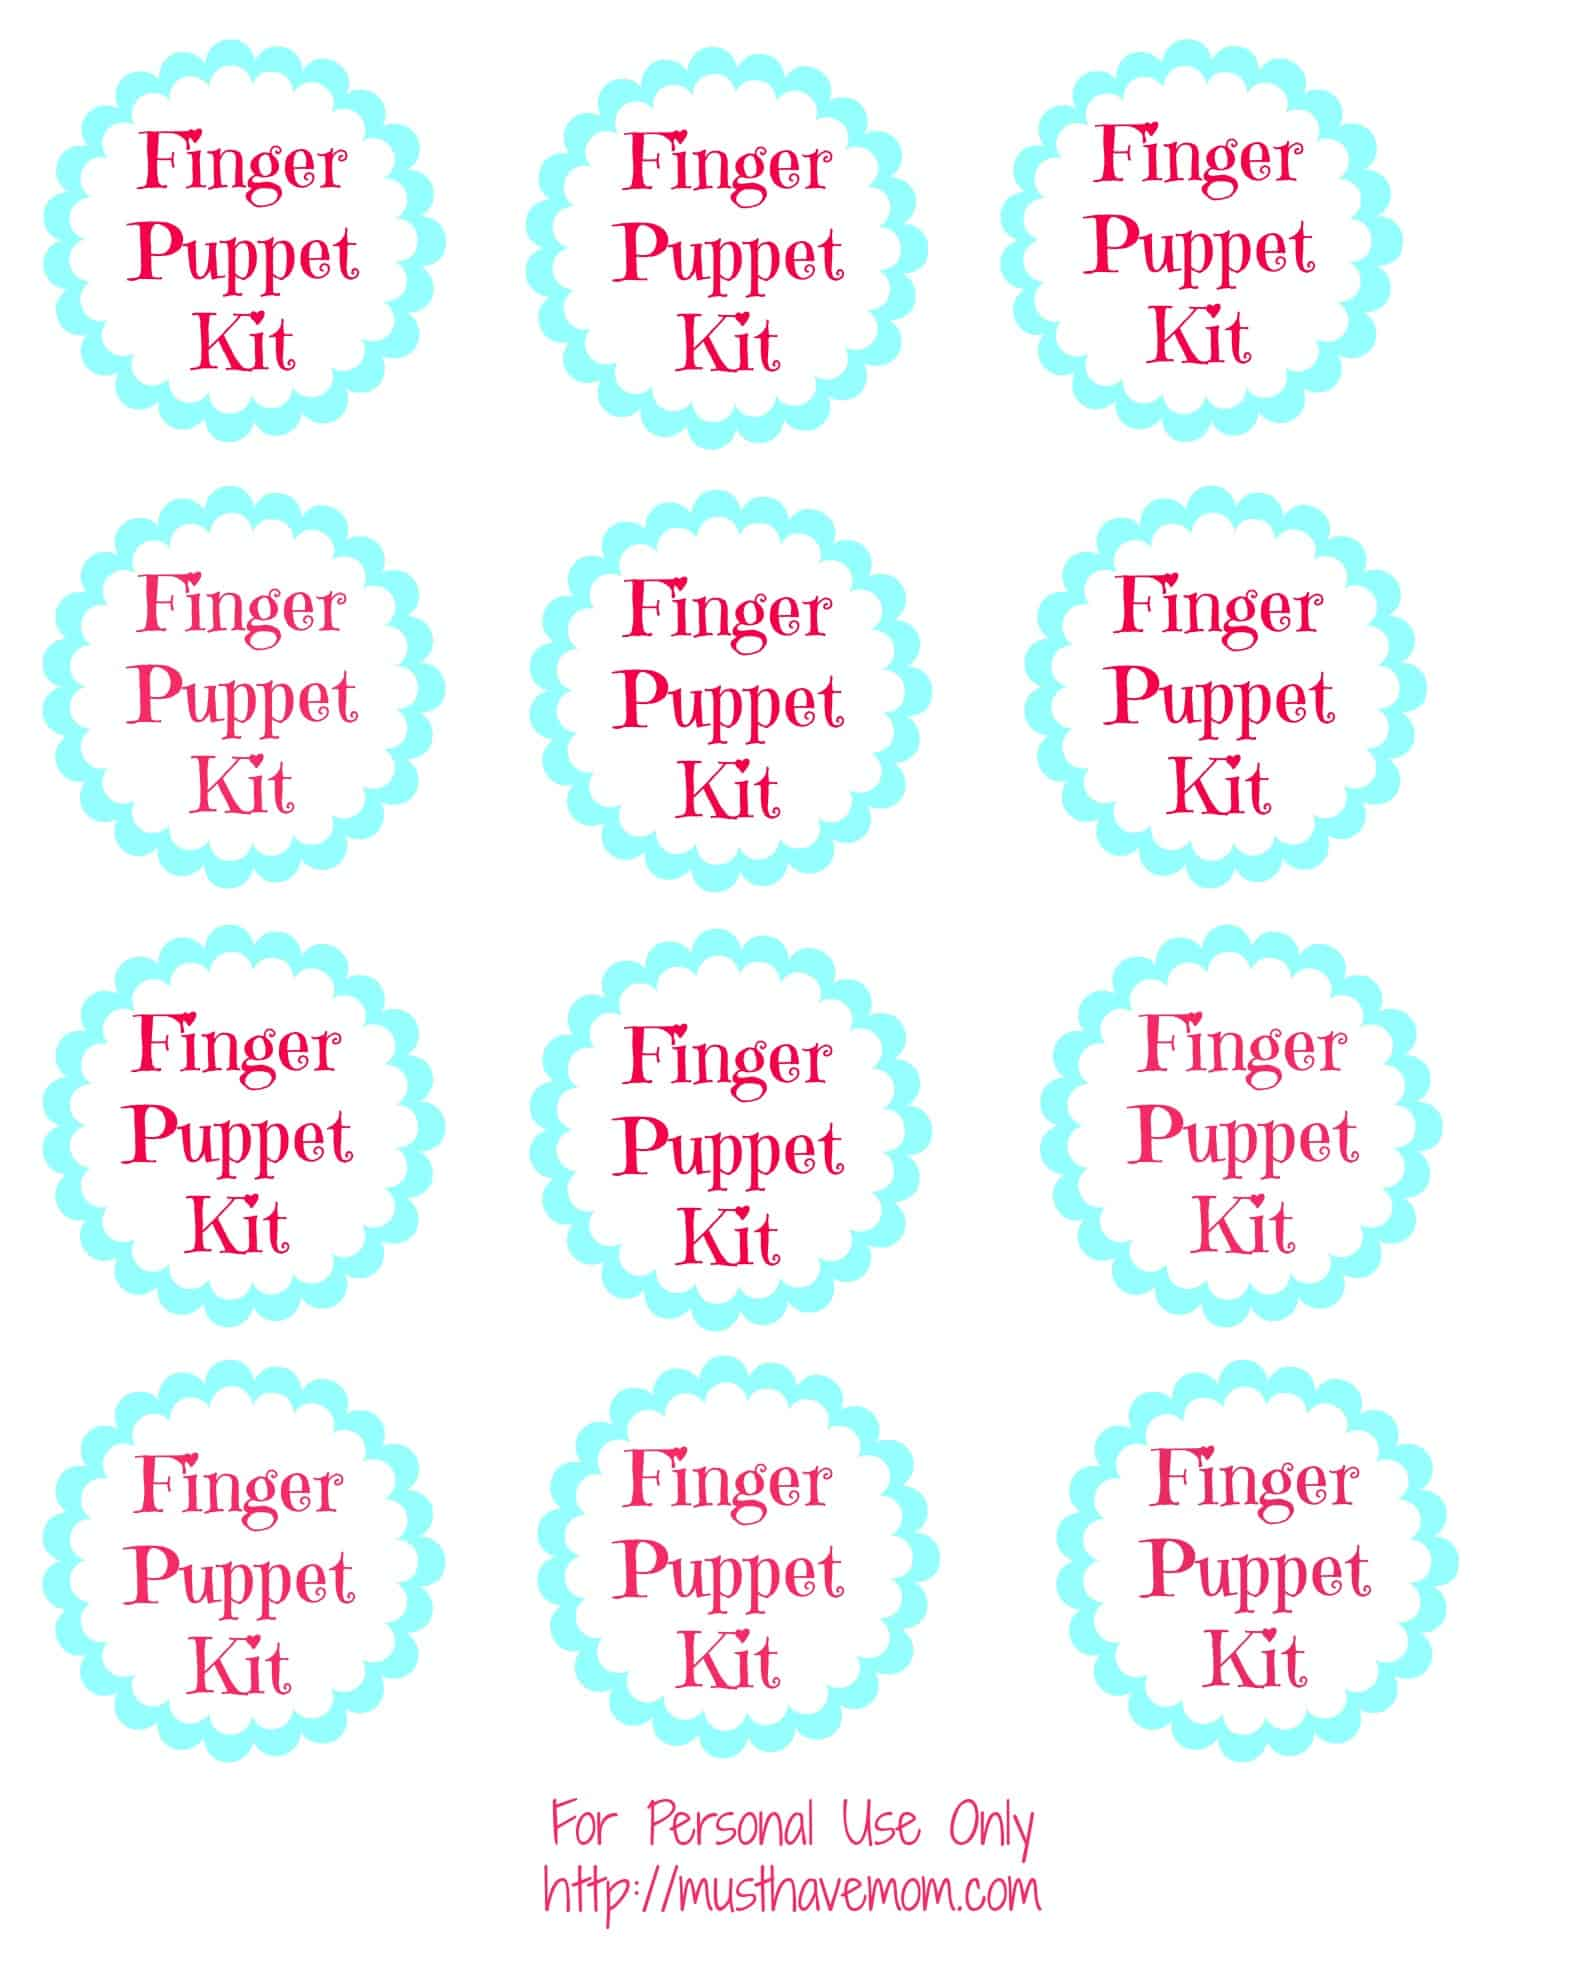 Finger Puppet Kit Free Printable Tags